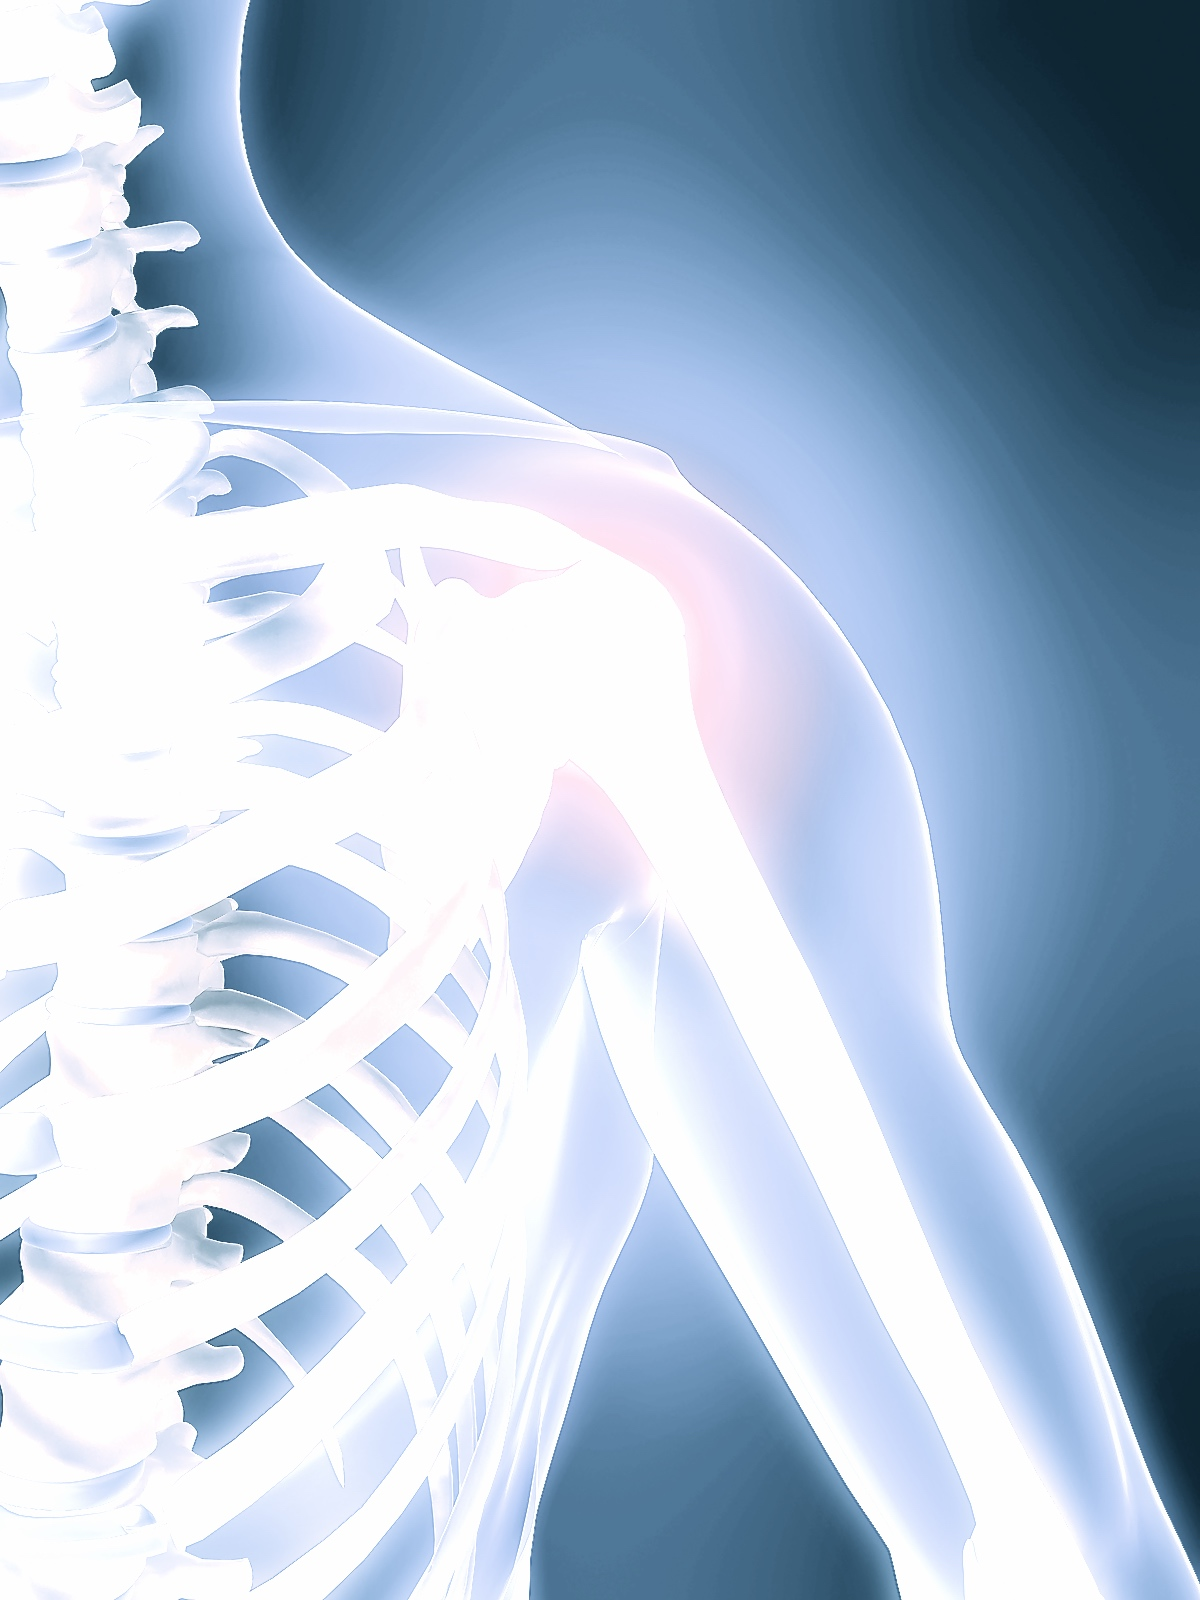 Risk factors which predispose first-time traumatic anterior shoulder dislocations to recurrent instability in adults